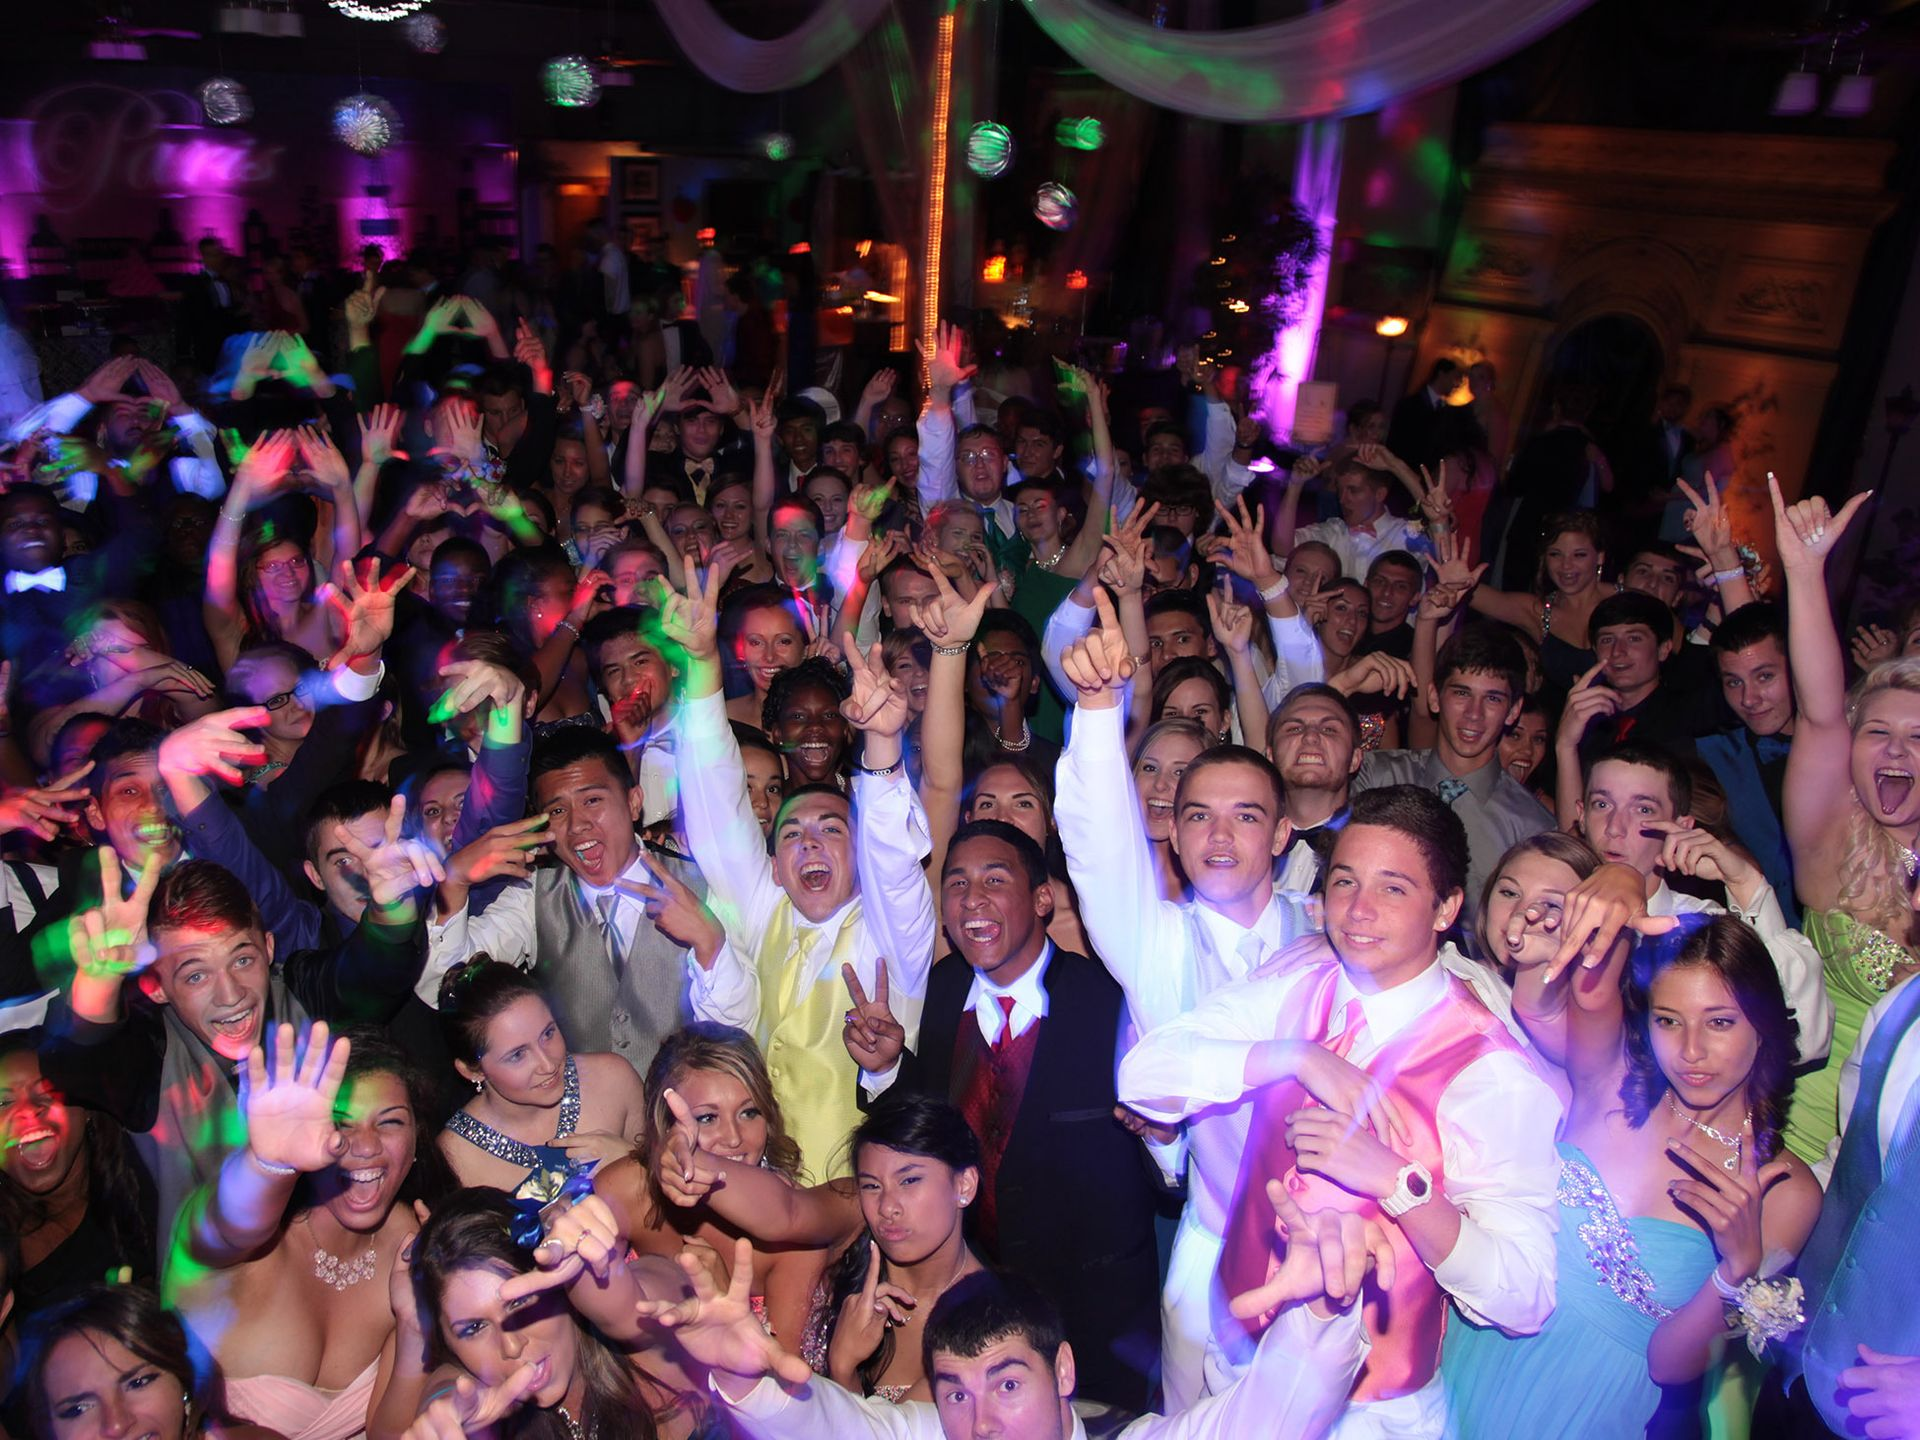 rockledge_high_school_prom_dj_waylon_duff_1